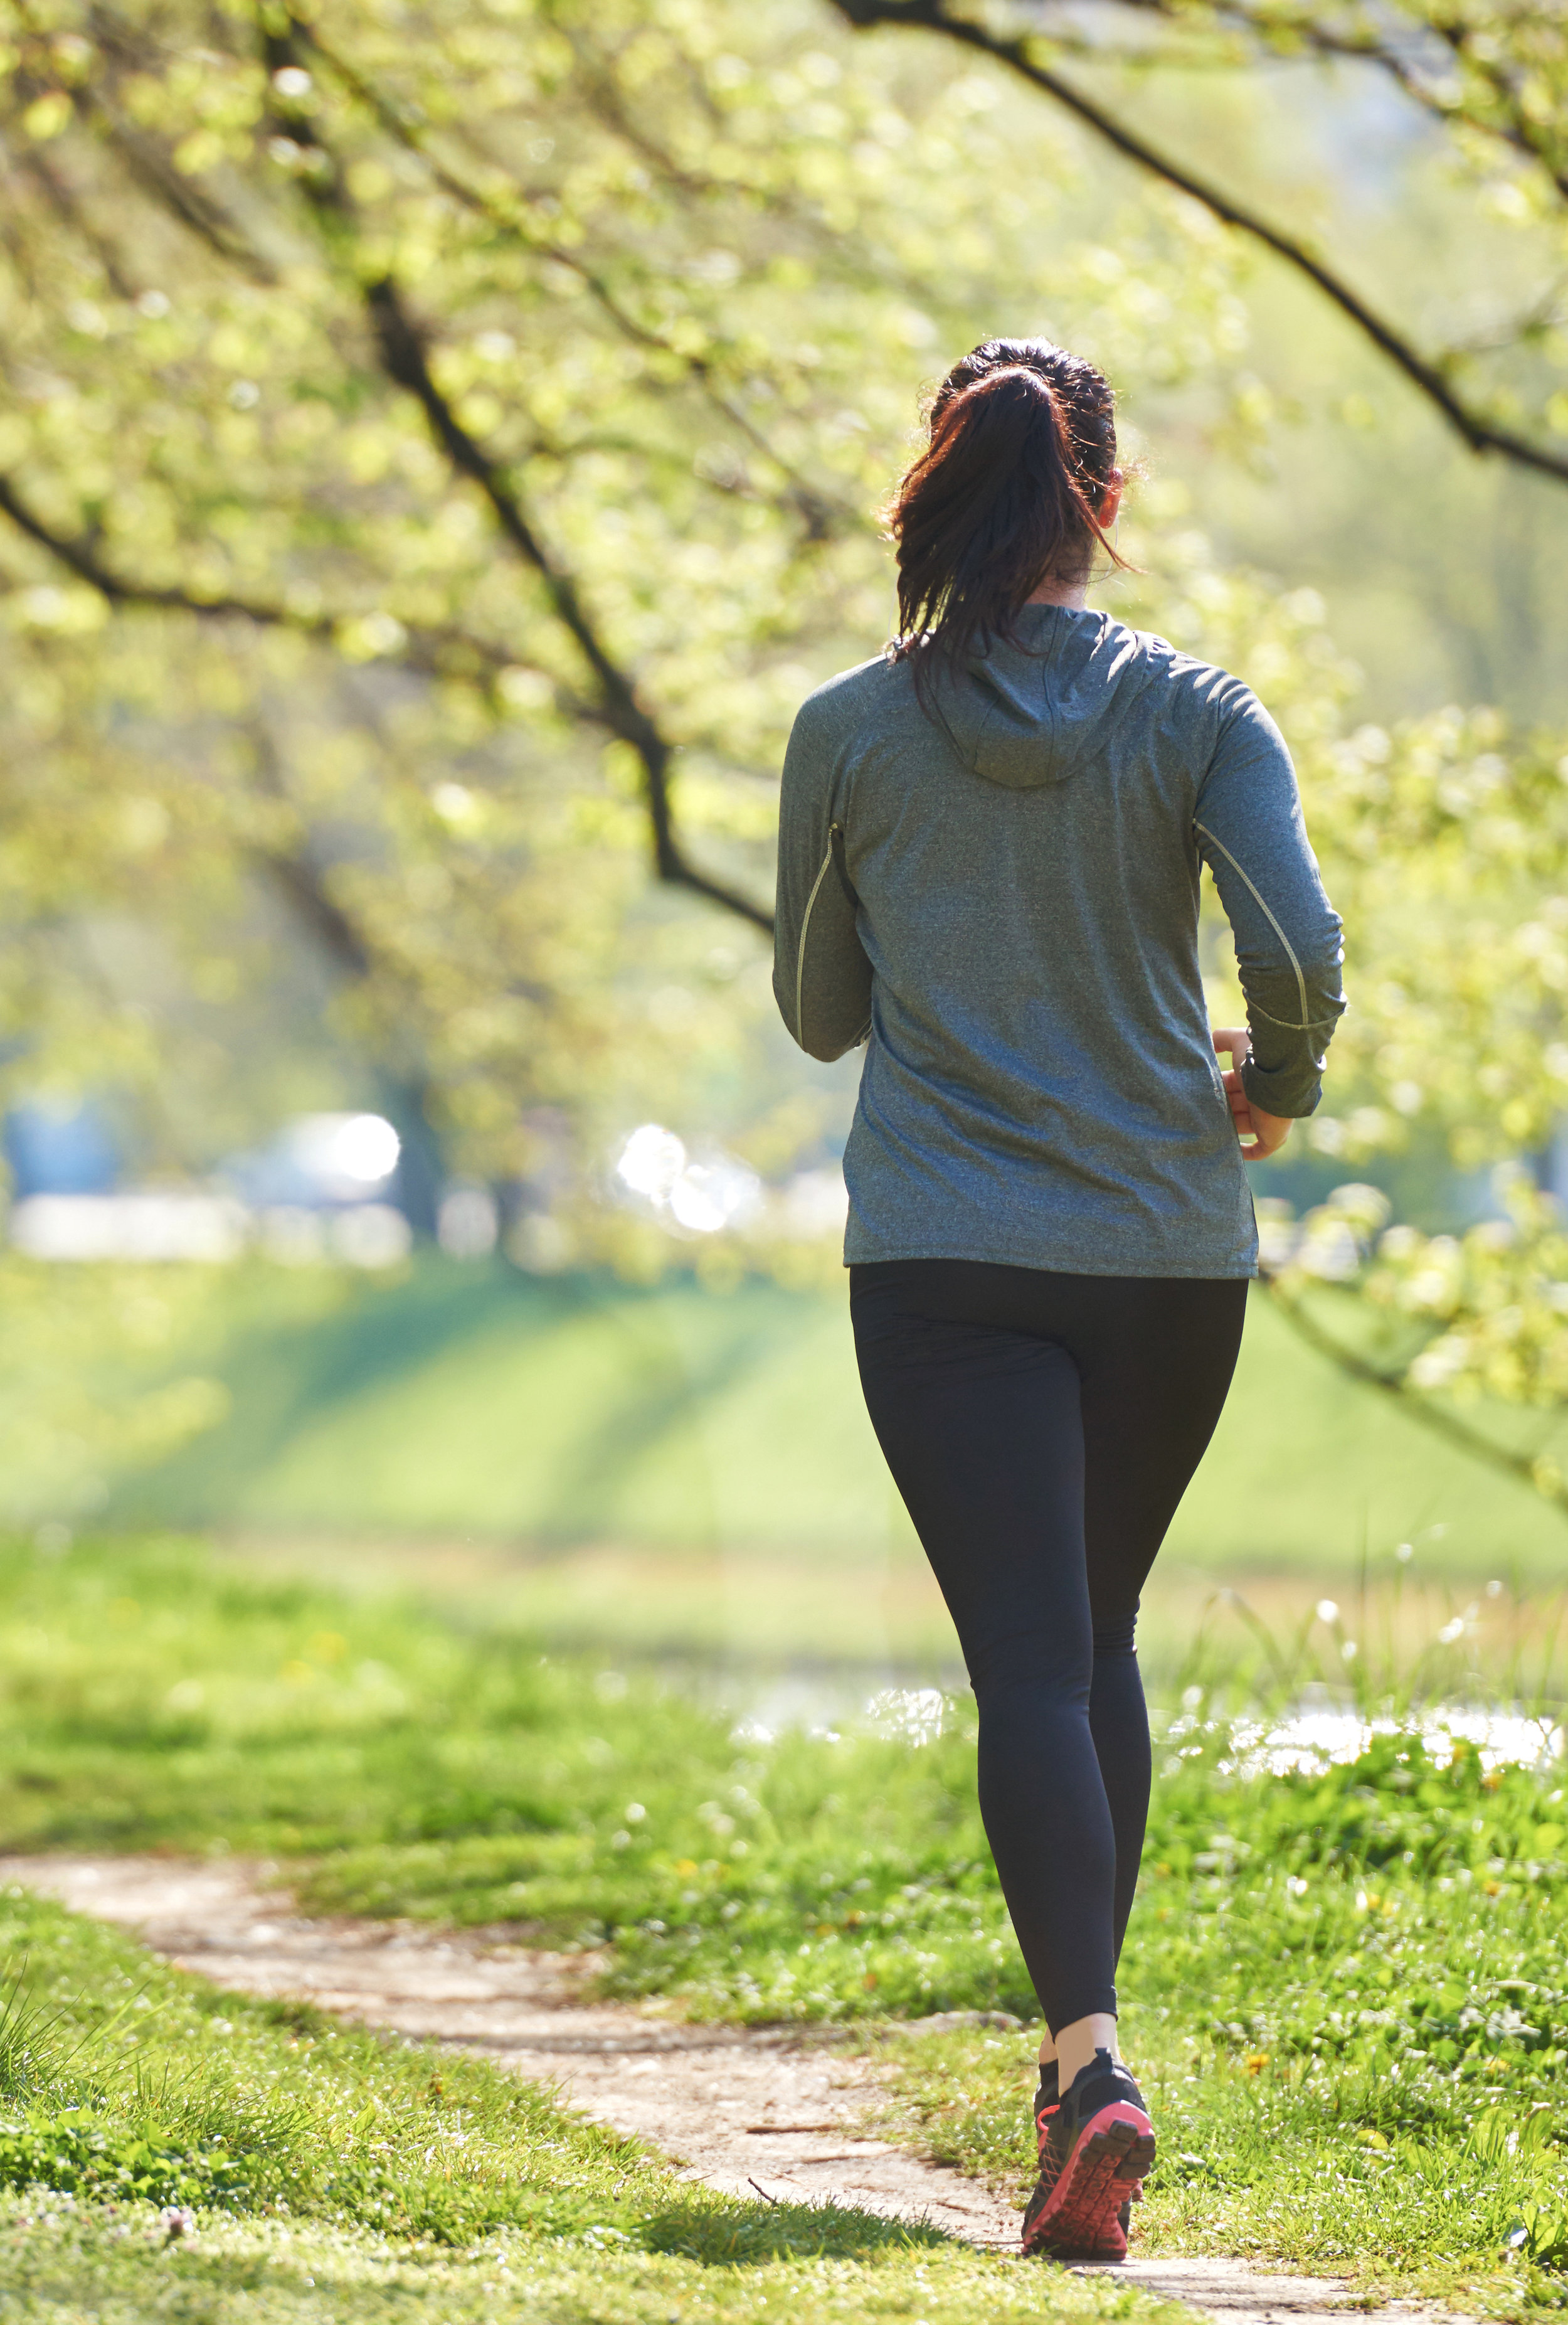 Moderate exercise can reduce your risk of cardiovascular disease.